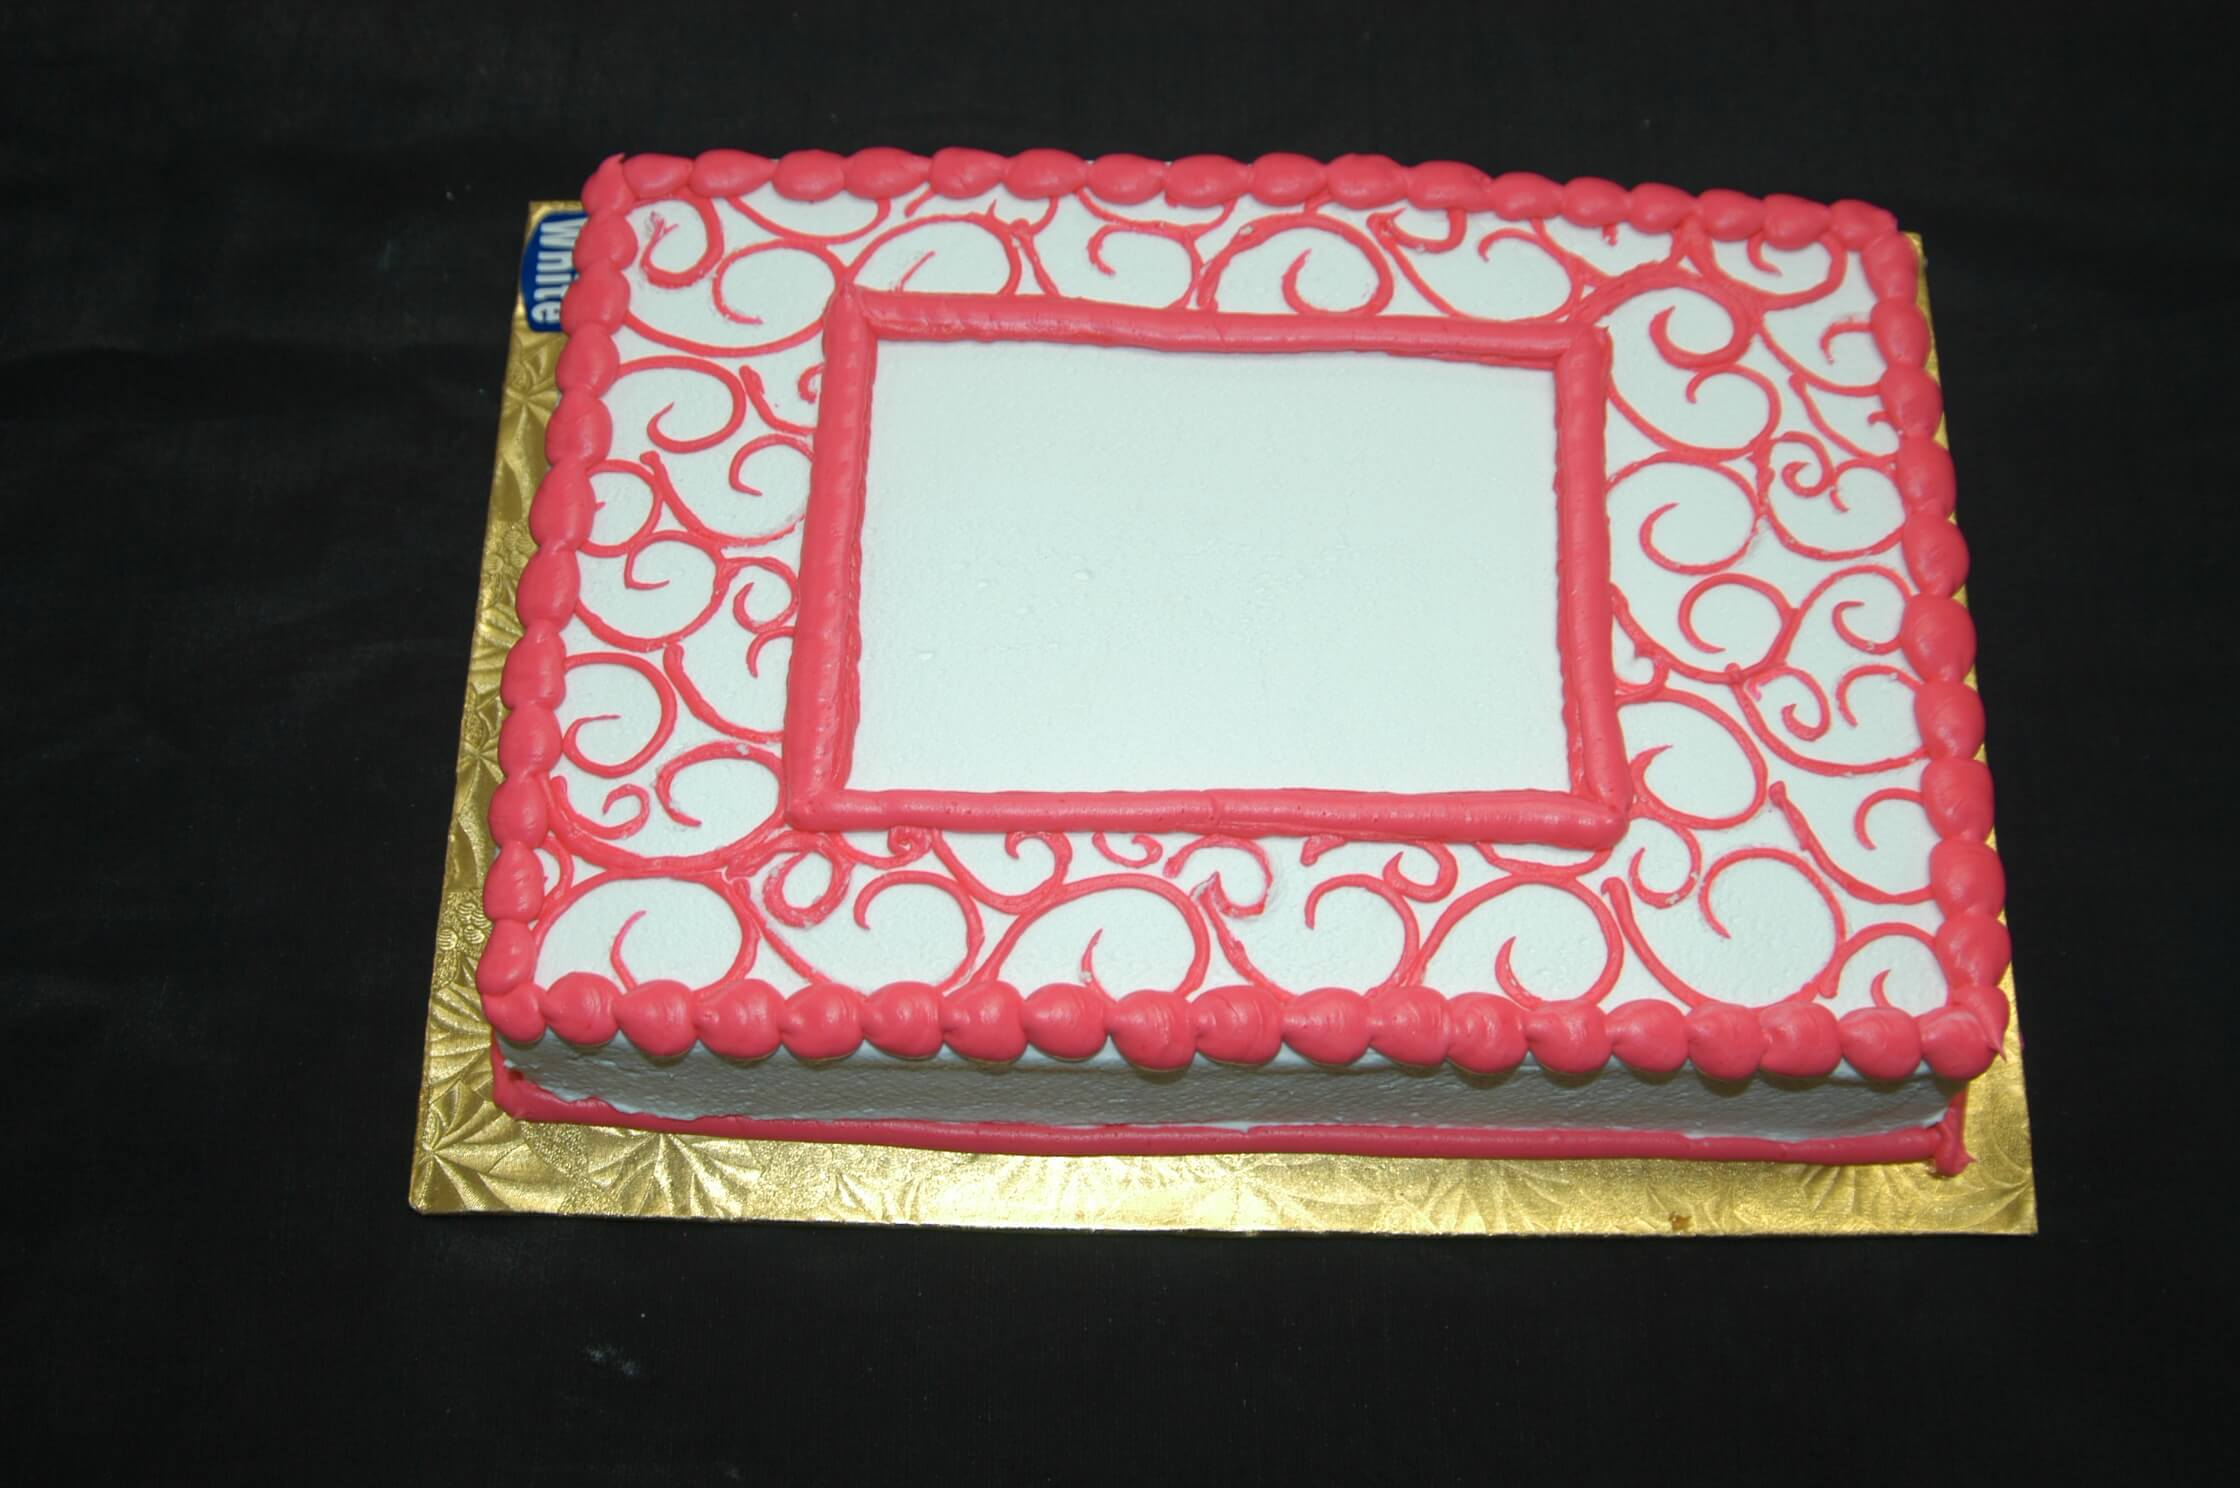 McArthur's Bakery Custom Cake with Simple Red Scrolling